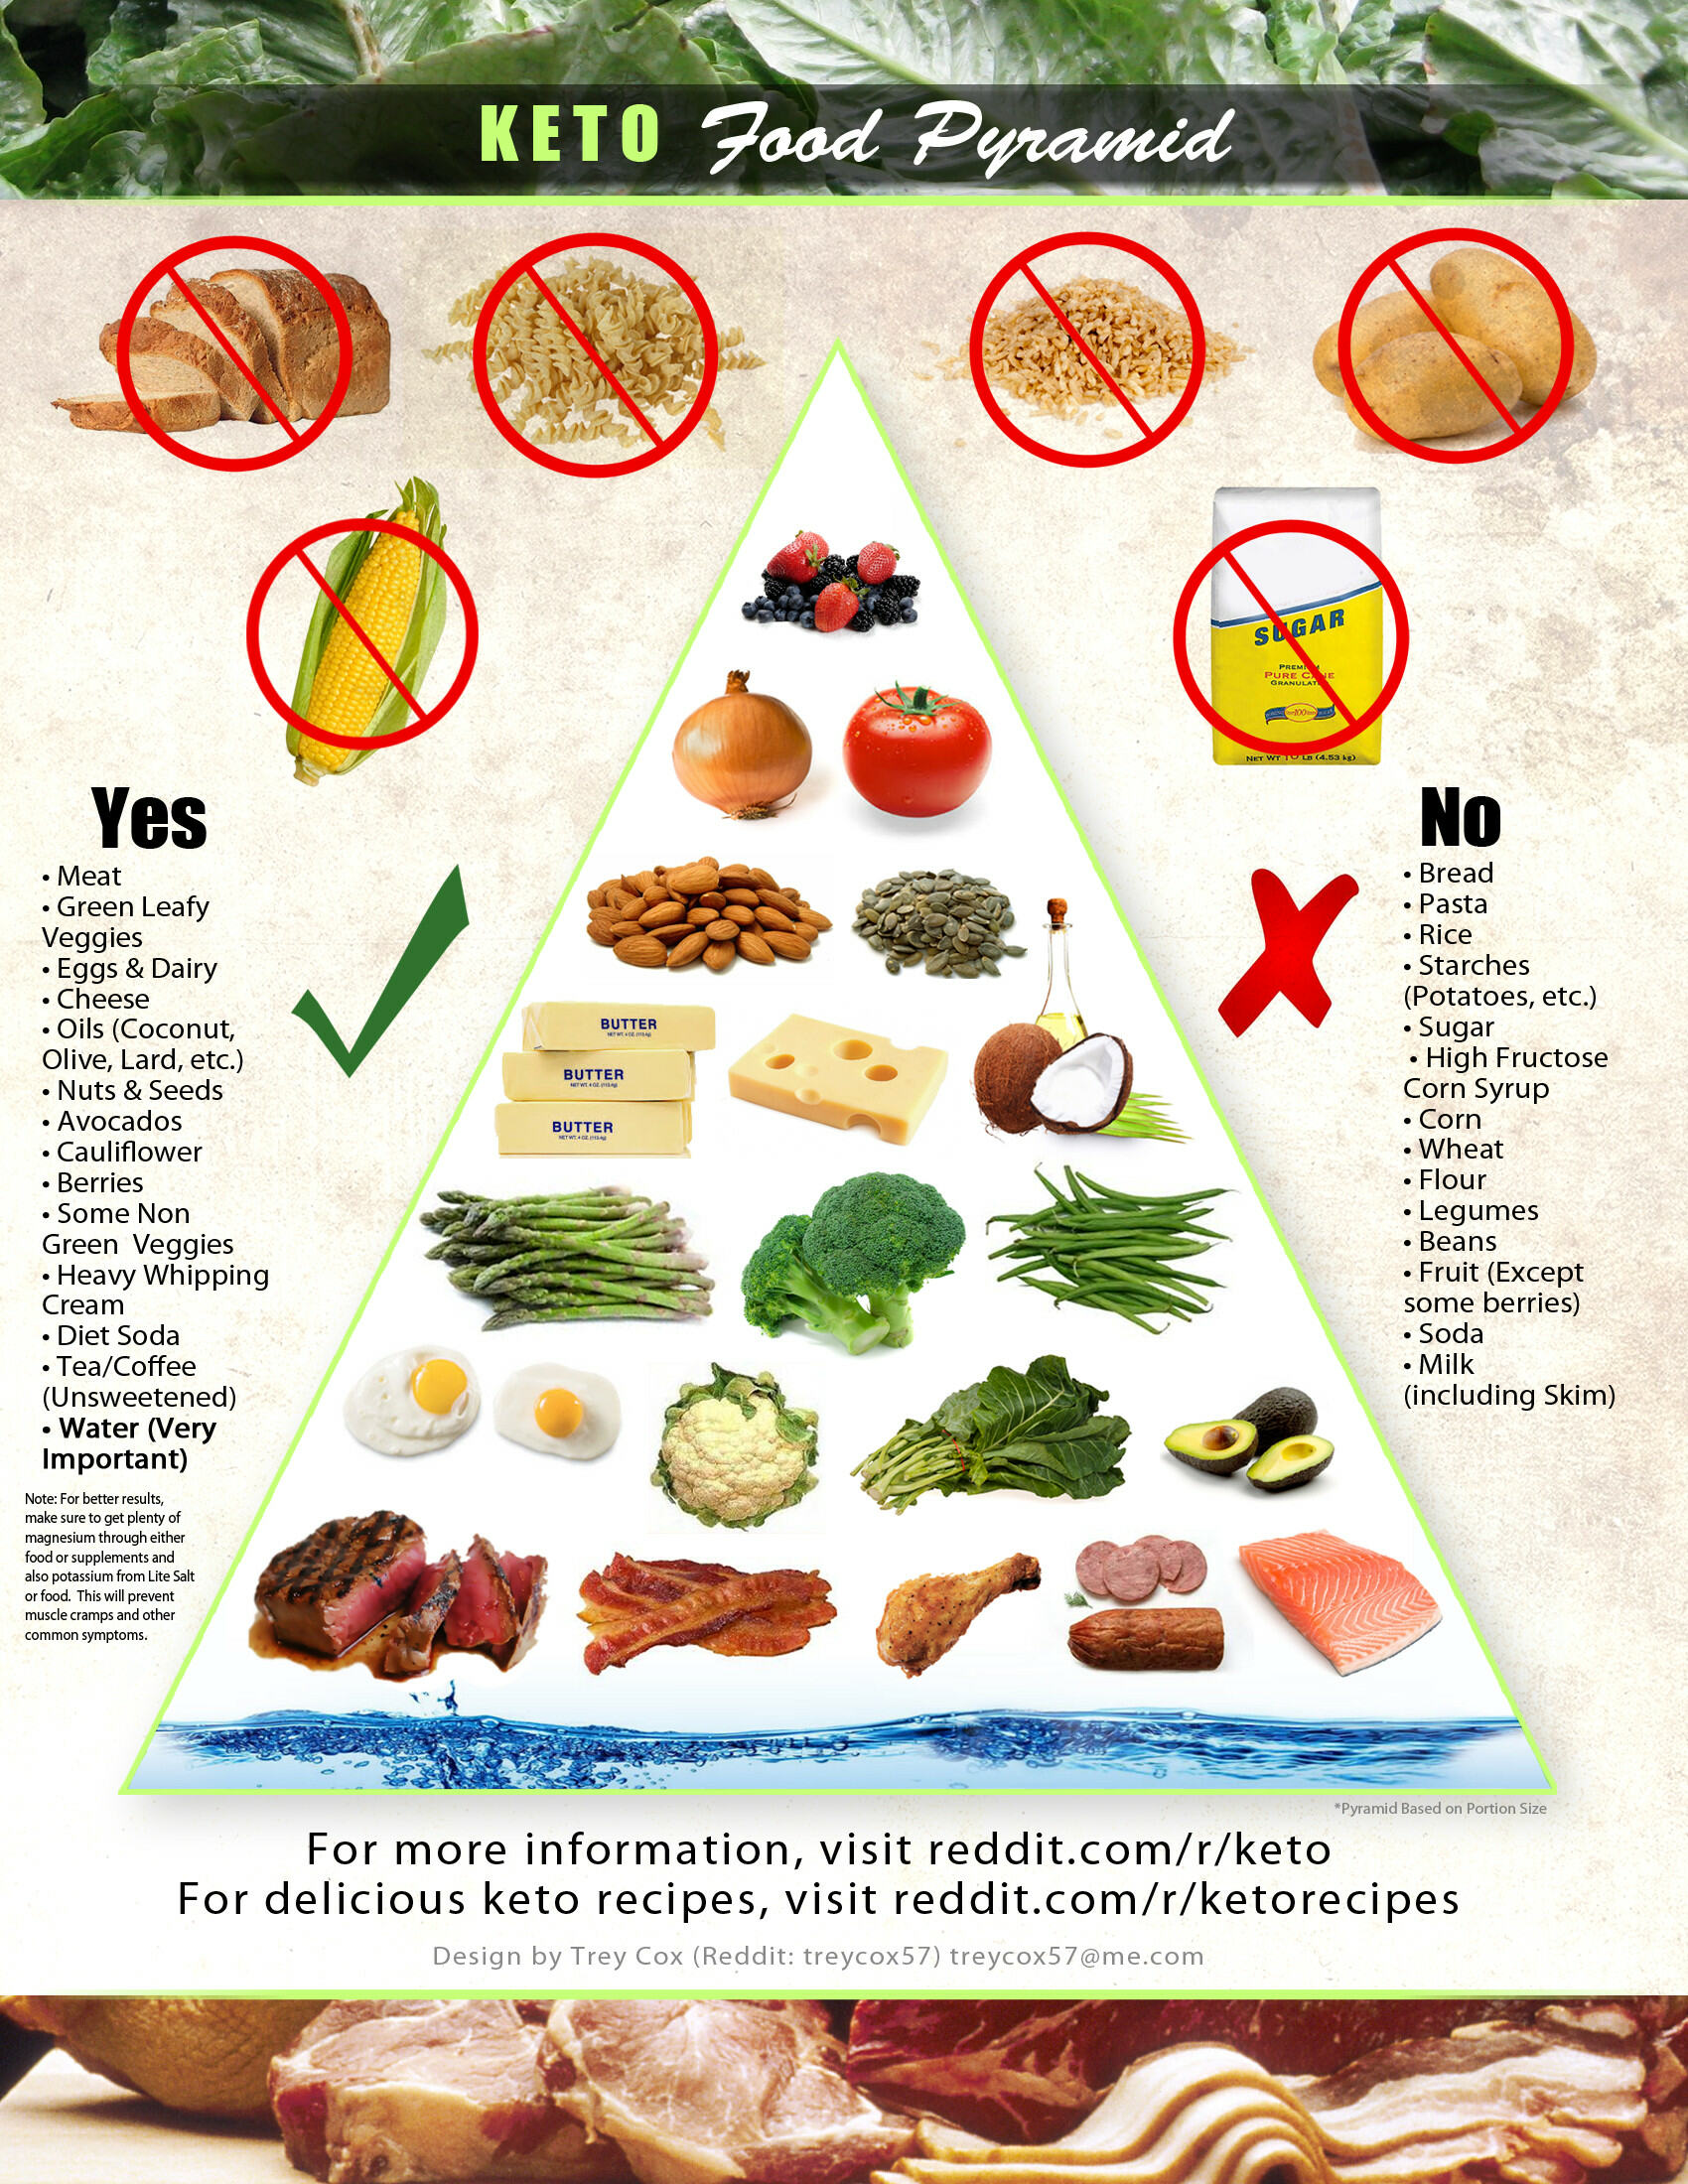 keto-paleo-diet-food-pyramid.jpg